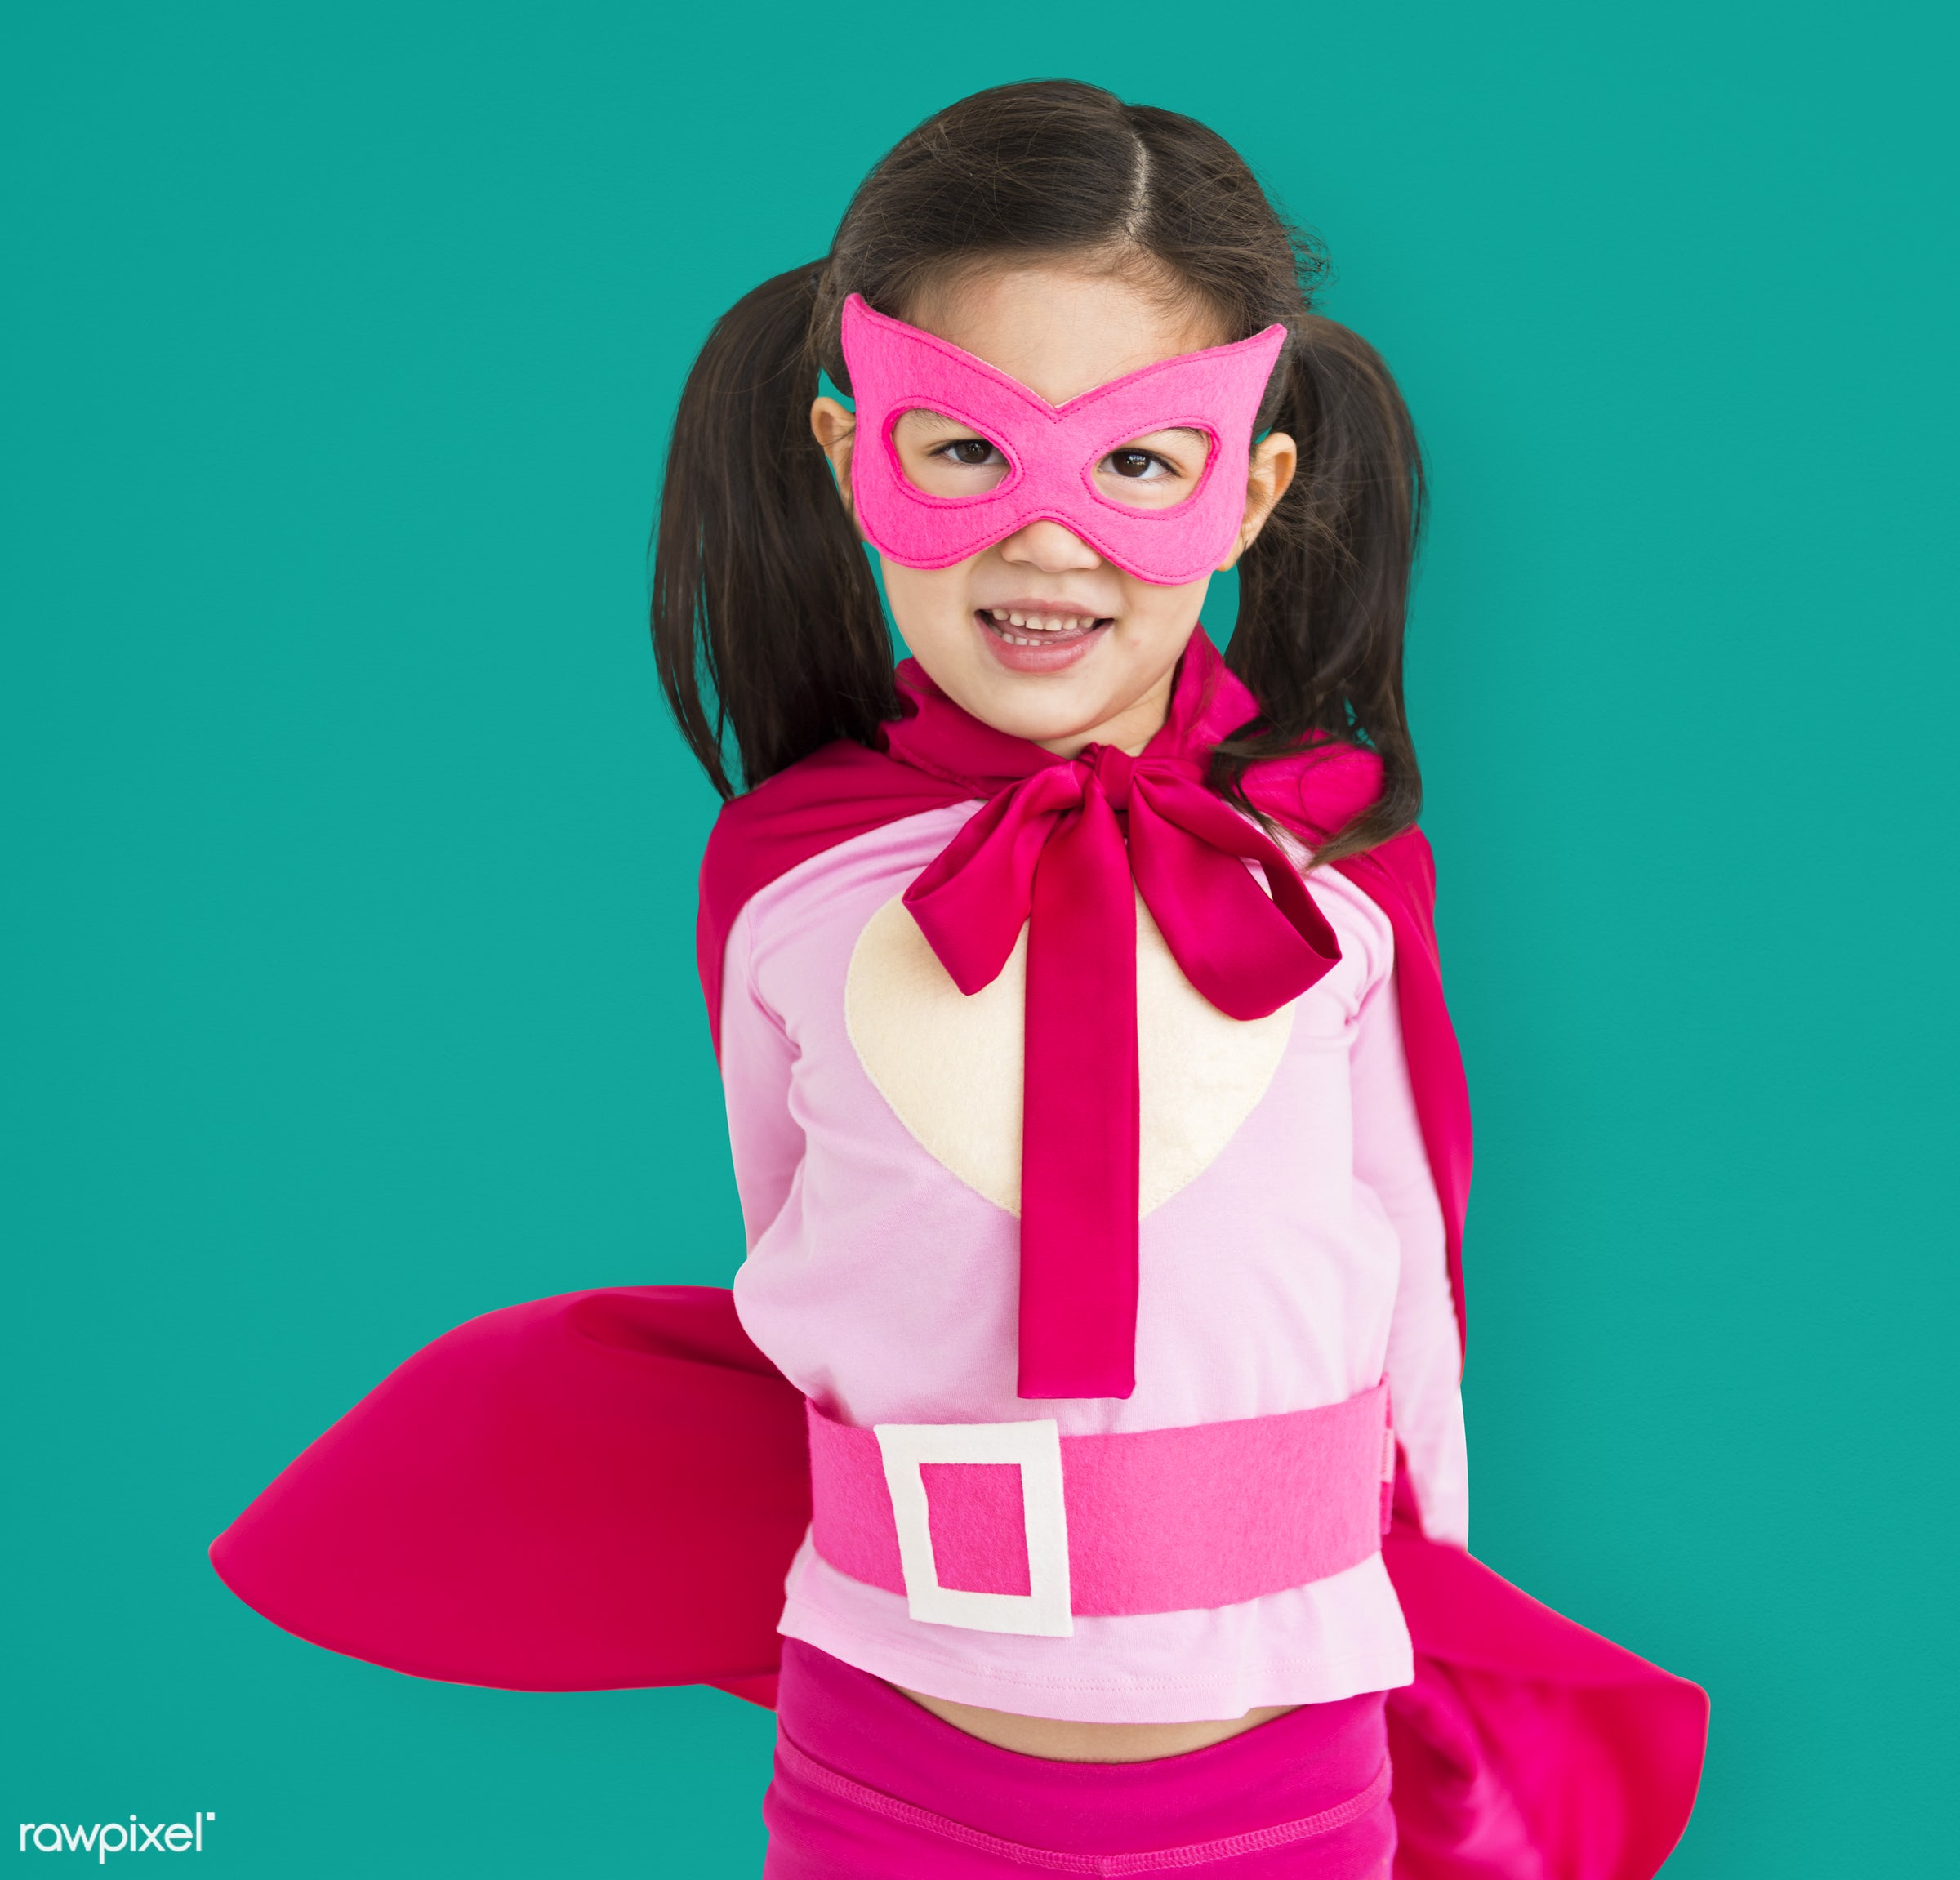 studio, expression, person, cape, joy, mask, little, cute, people, kid, love, girl, smile, cheerful, smiling, superhero,...